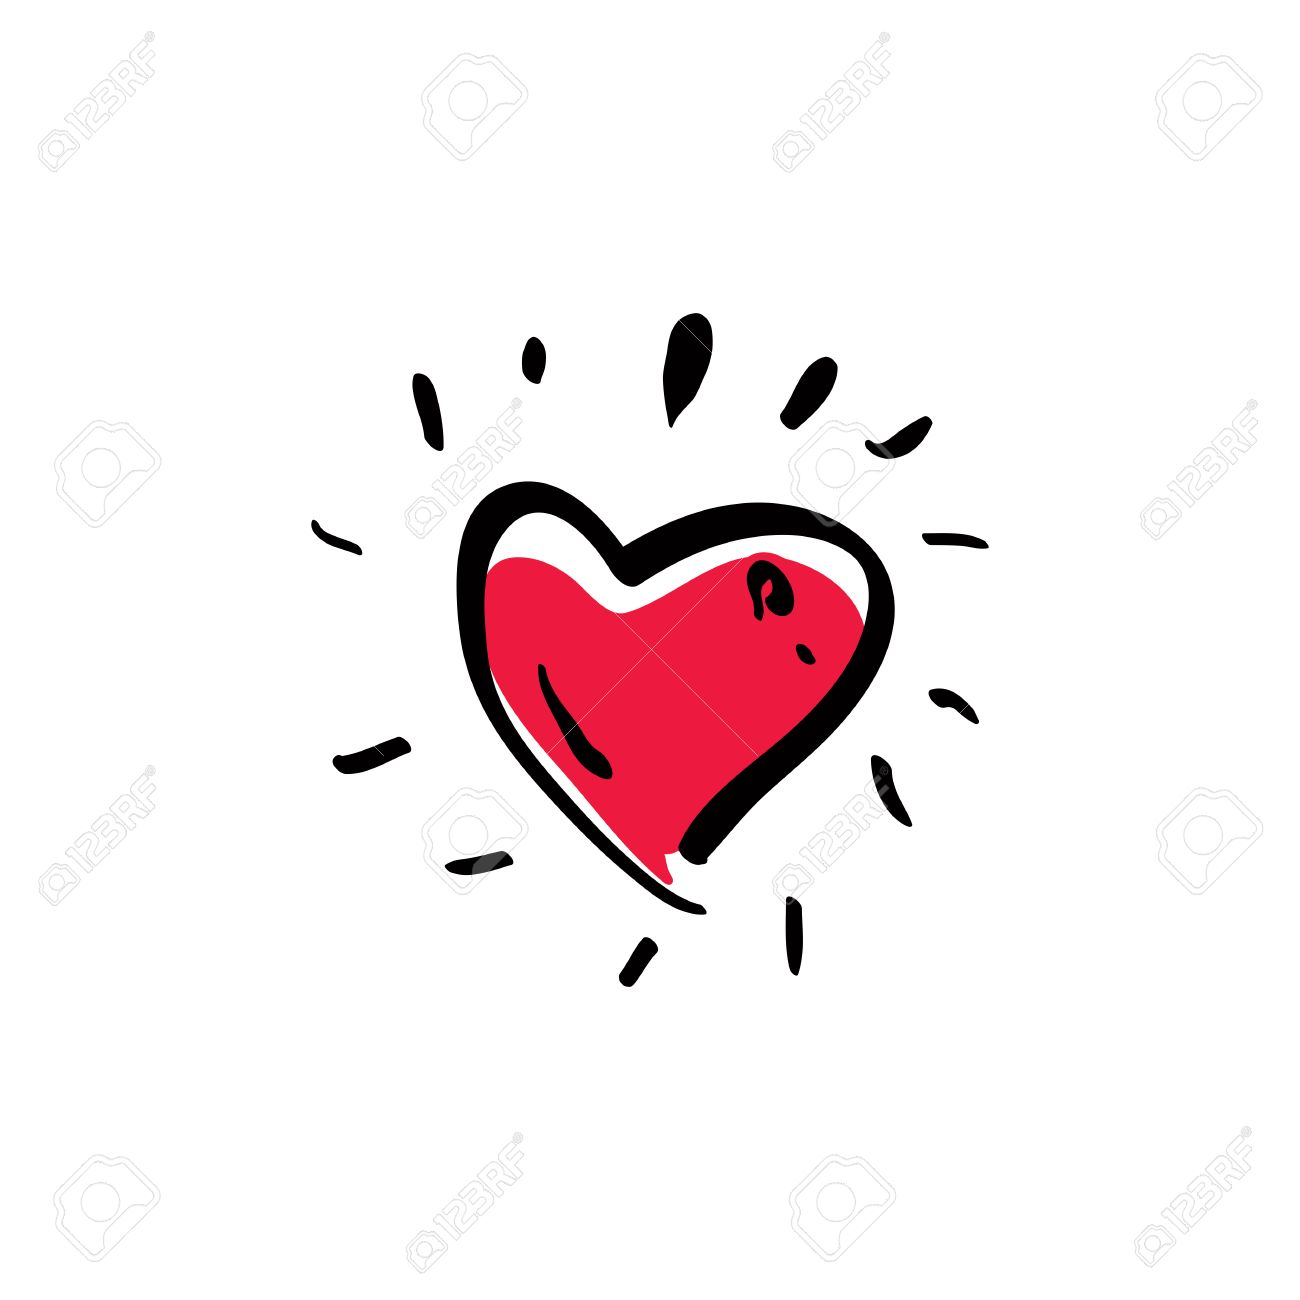 Illustrated red love heart isolated on white background, vector valentine icon. Stock Vector - 31988590